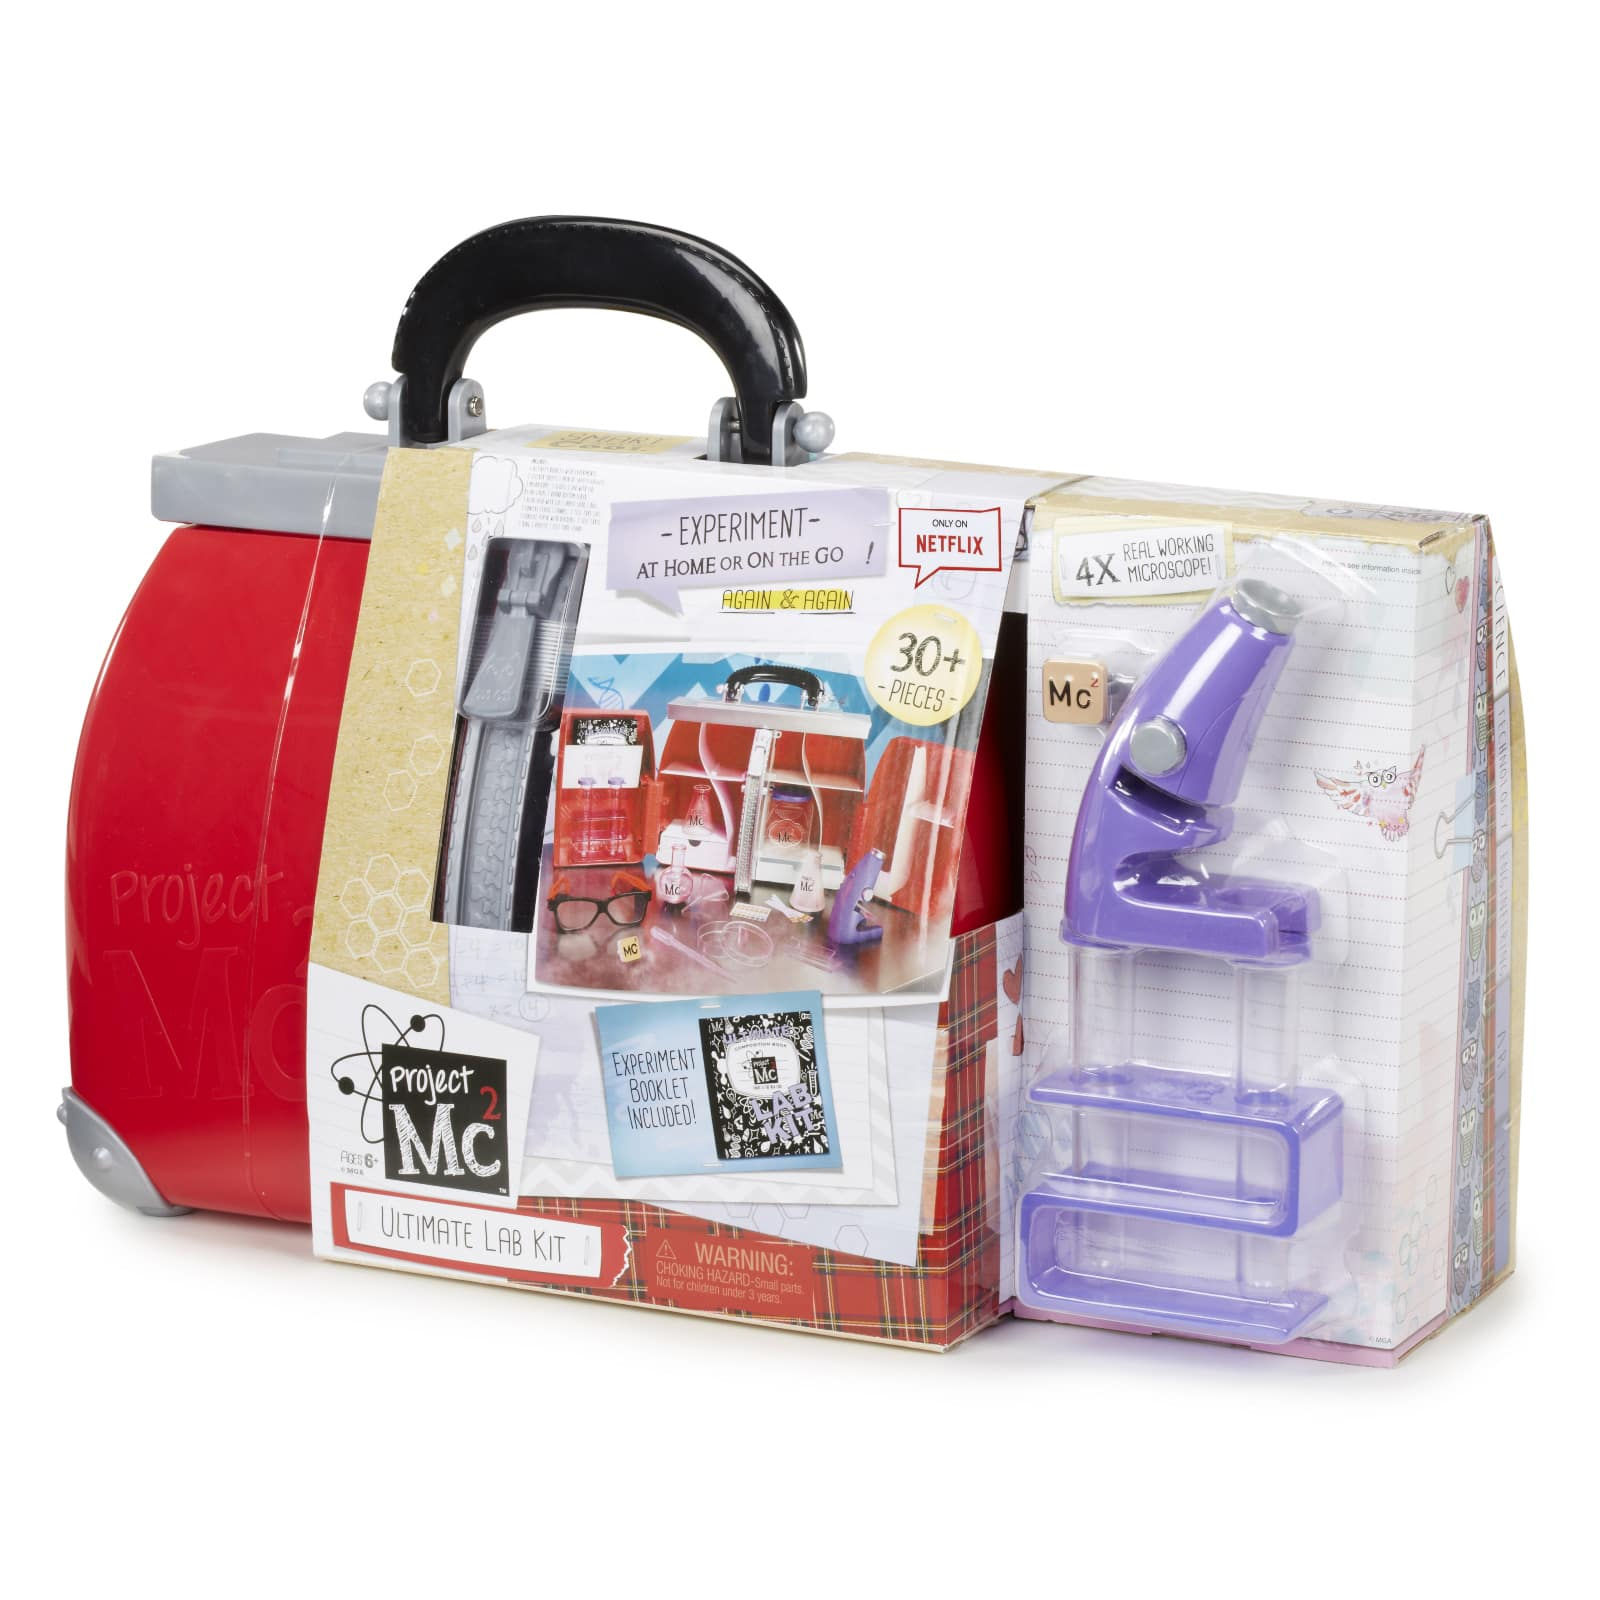 Buy The Project Mc2 Ultimate Lab Kit At Michaels